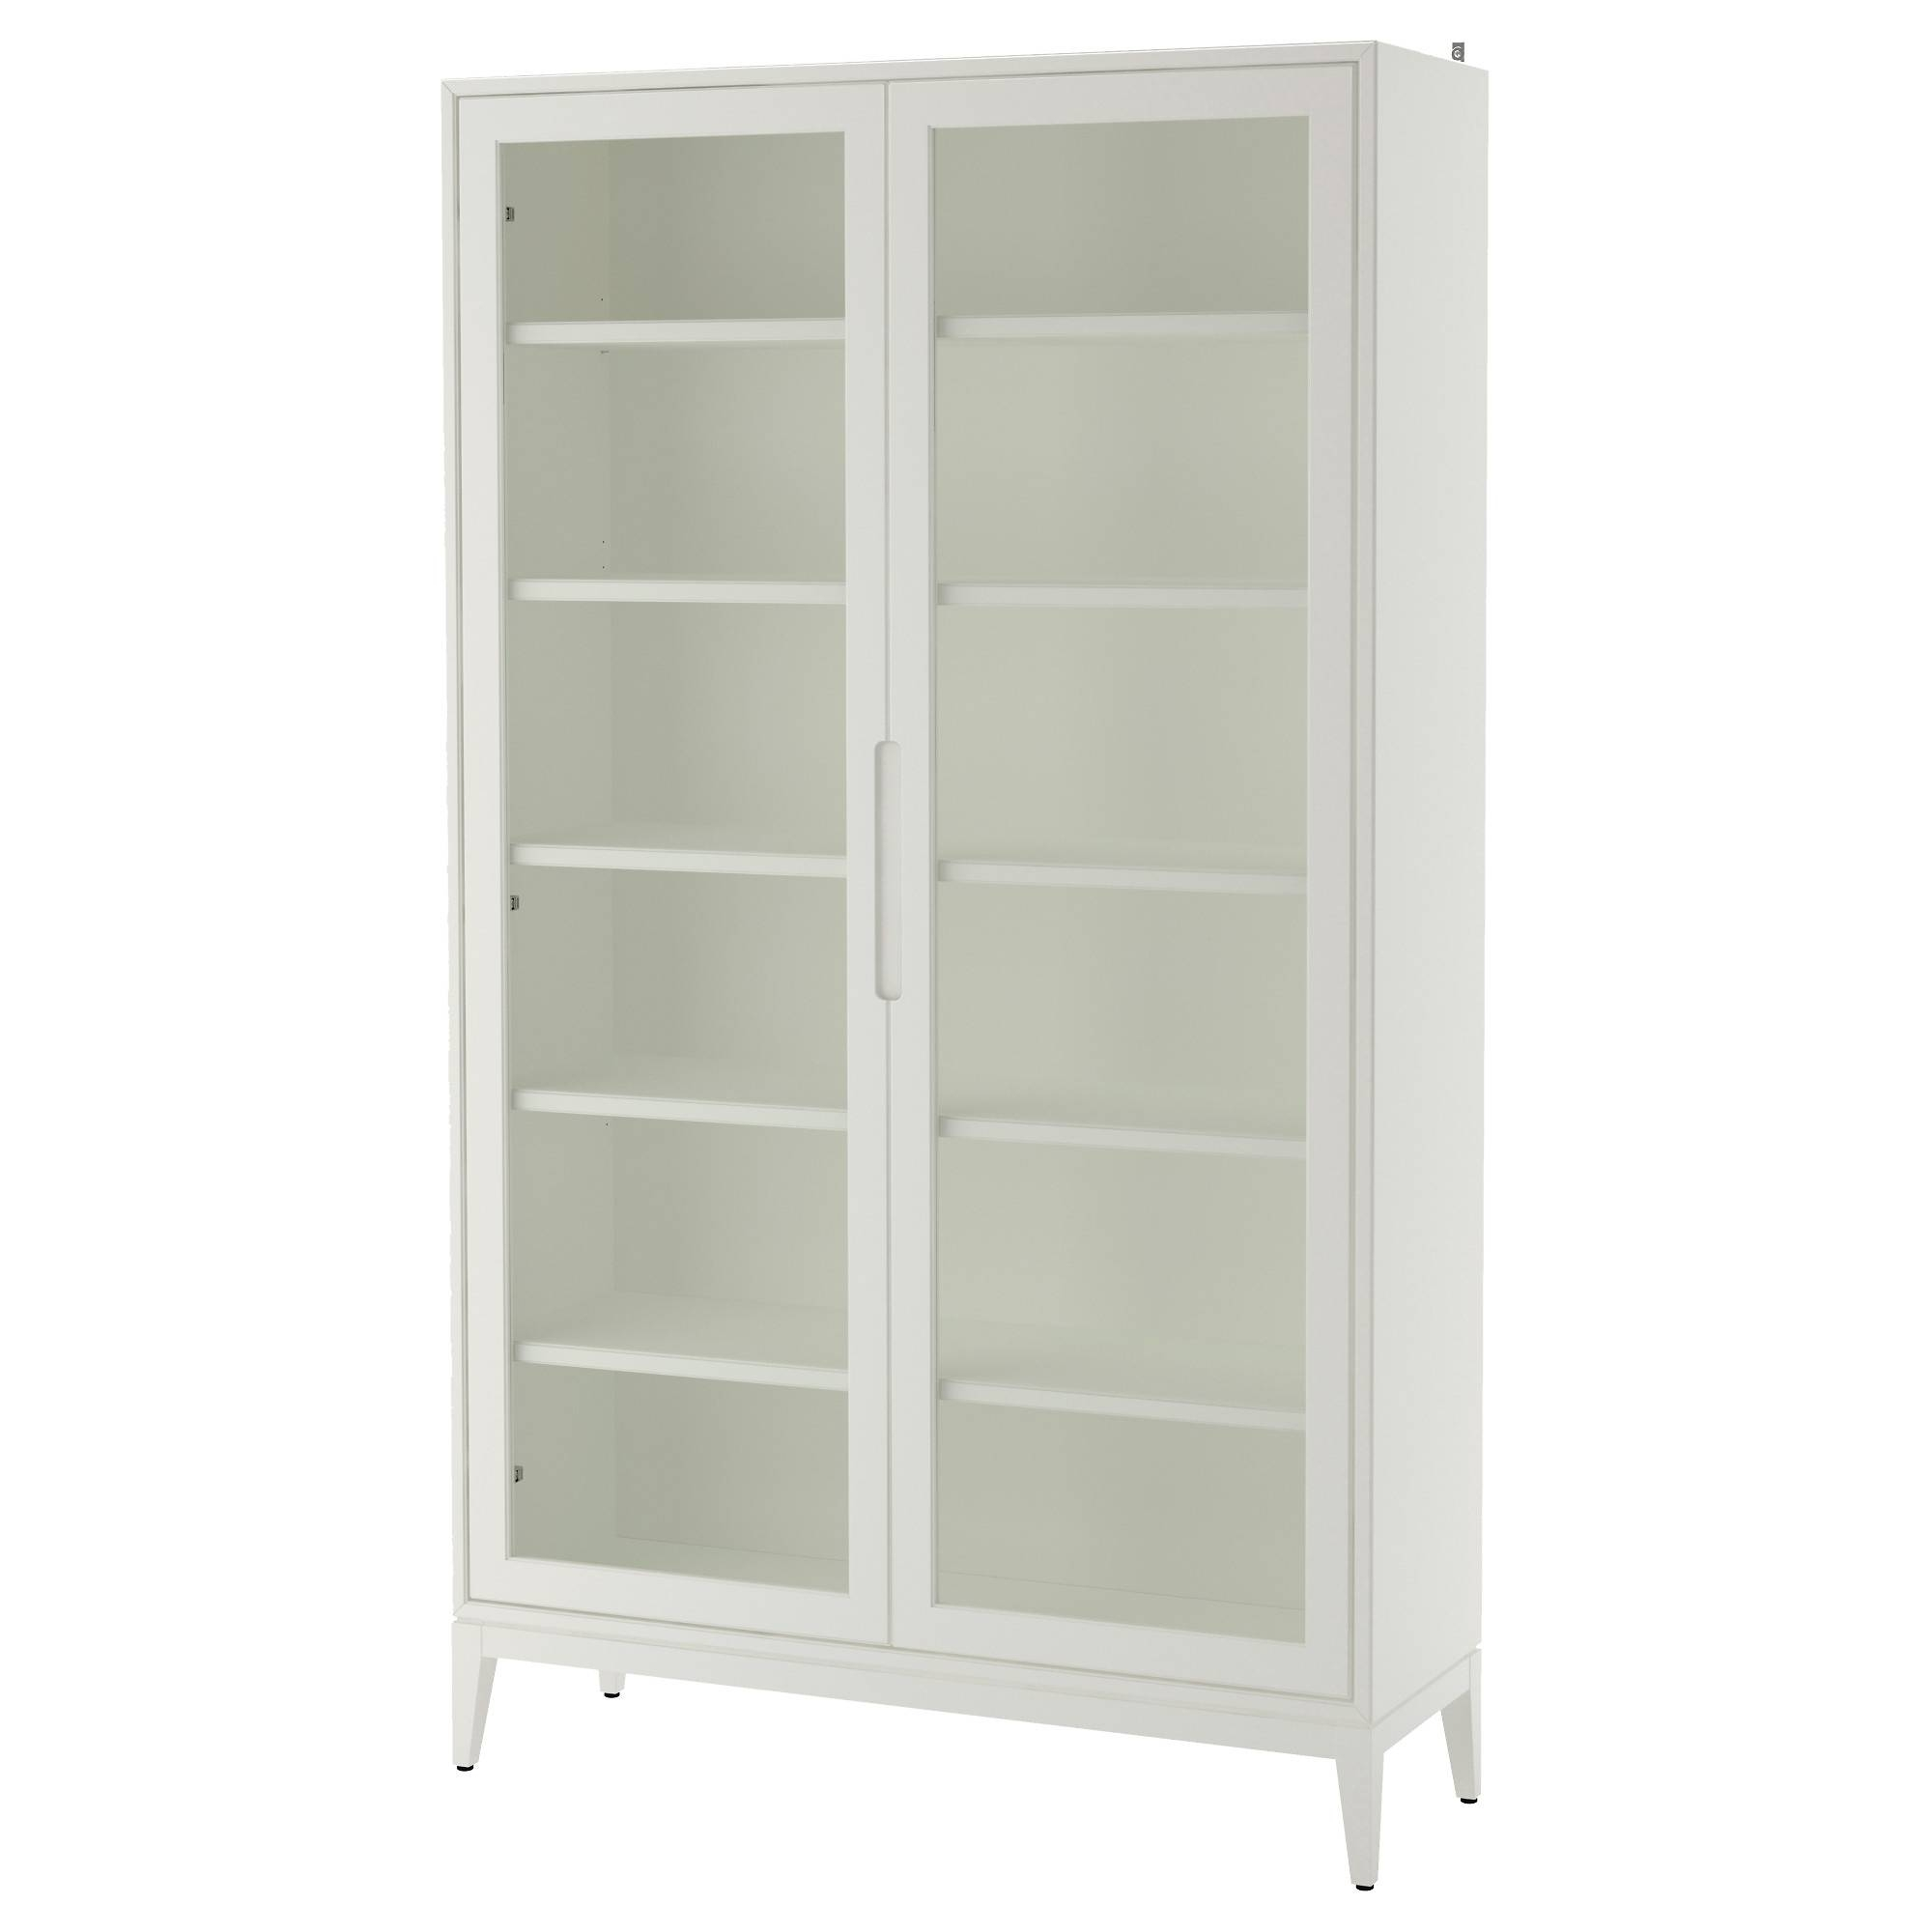 Shallow Storage Cabinet Cabinets & Sideboards - Ikea - Signin Works for Shallow Sideboard Cabinets (Image 19 of 30)